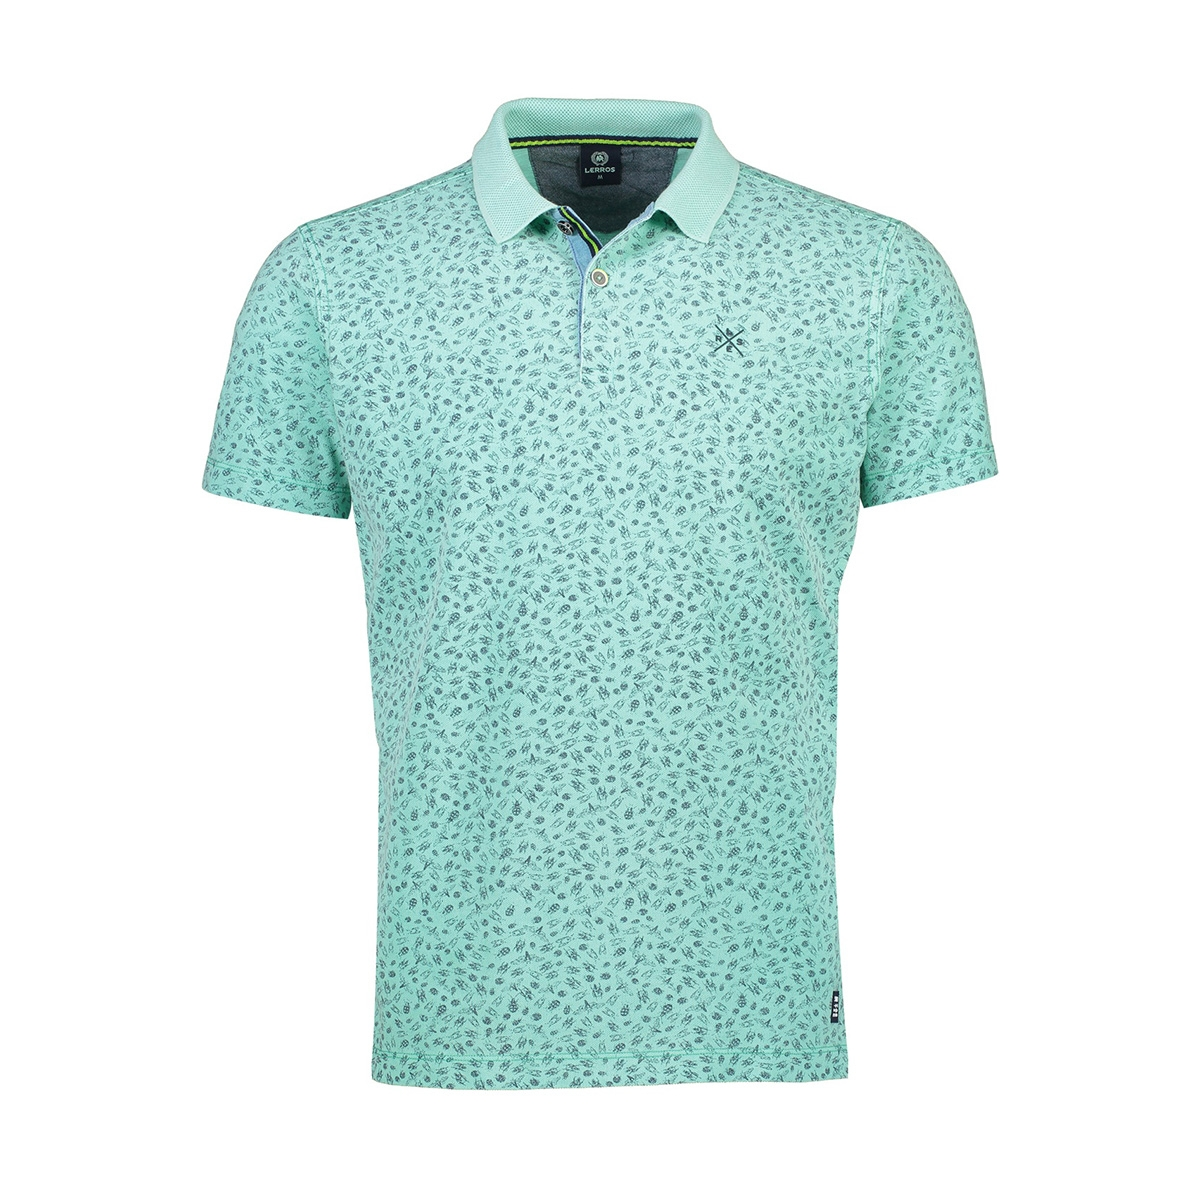 polo met insect print 2033261 lerros polo 617